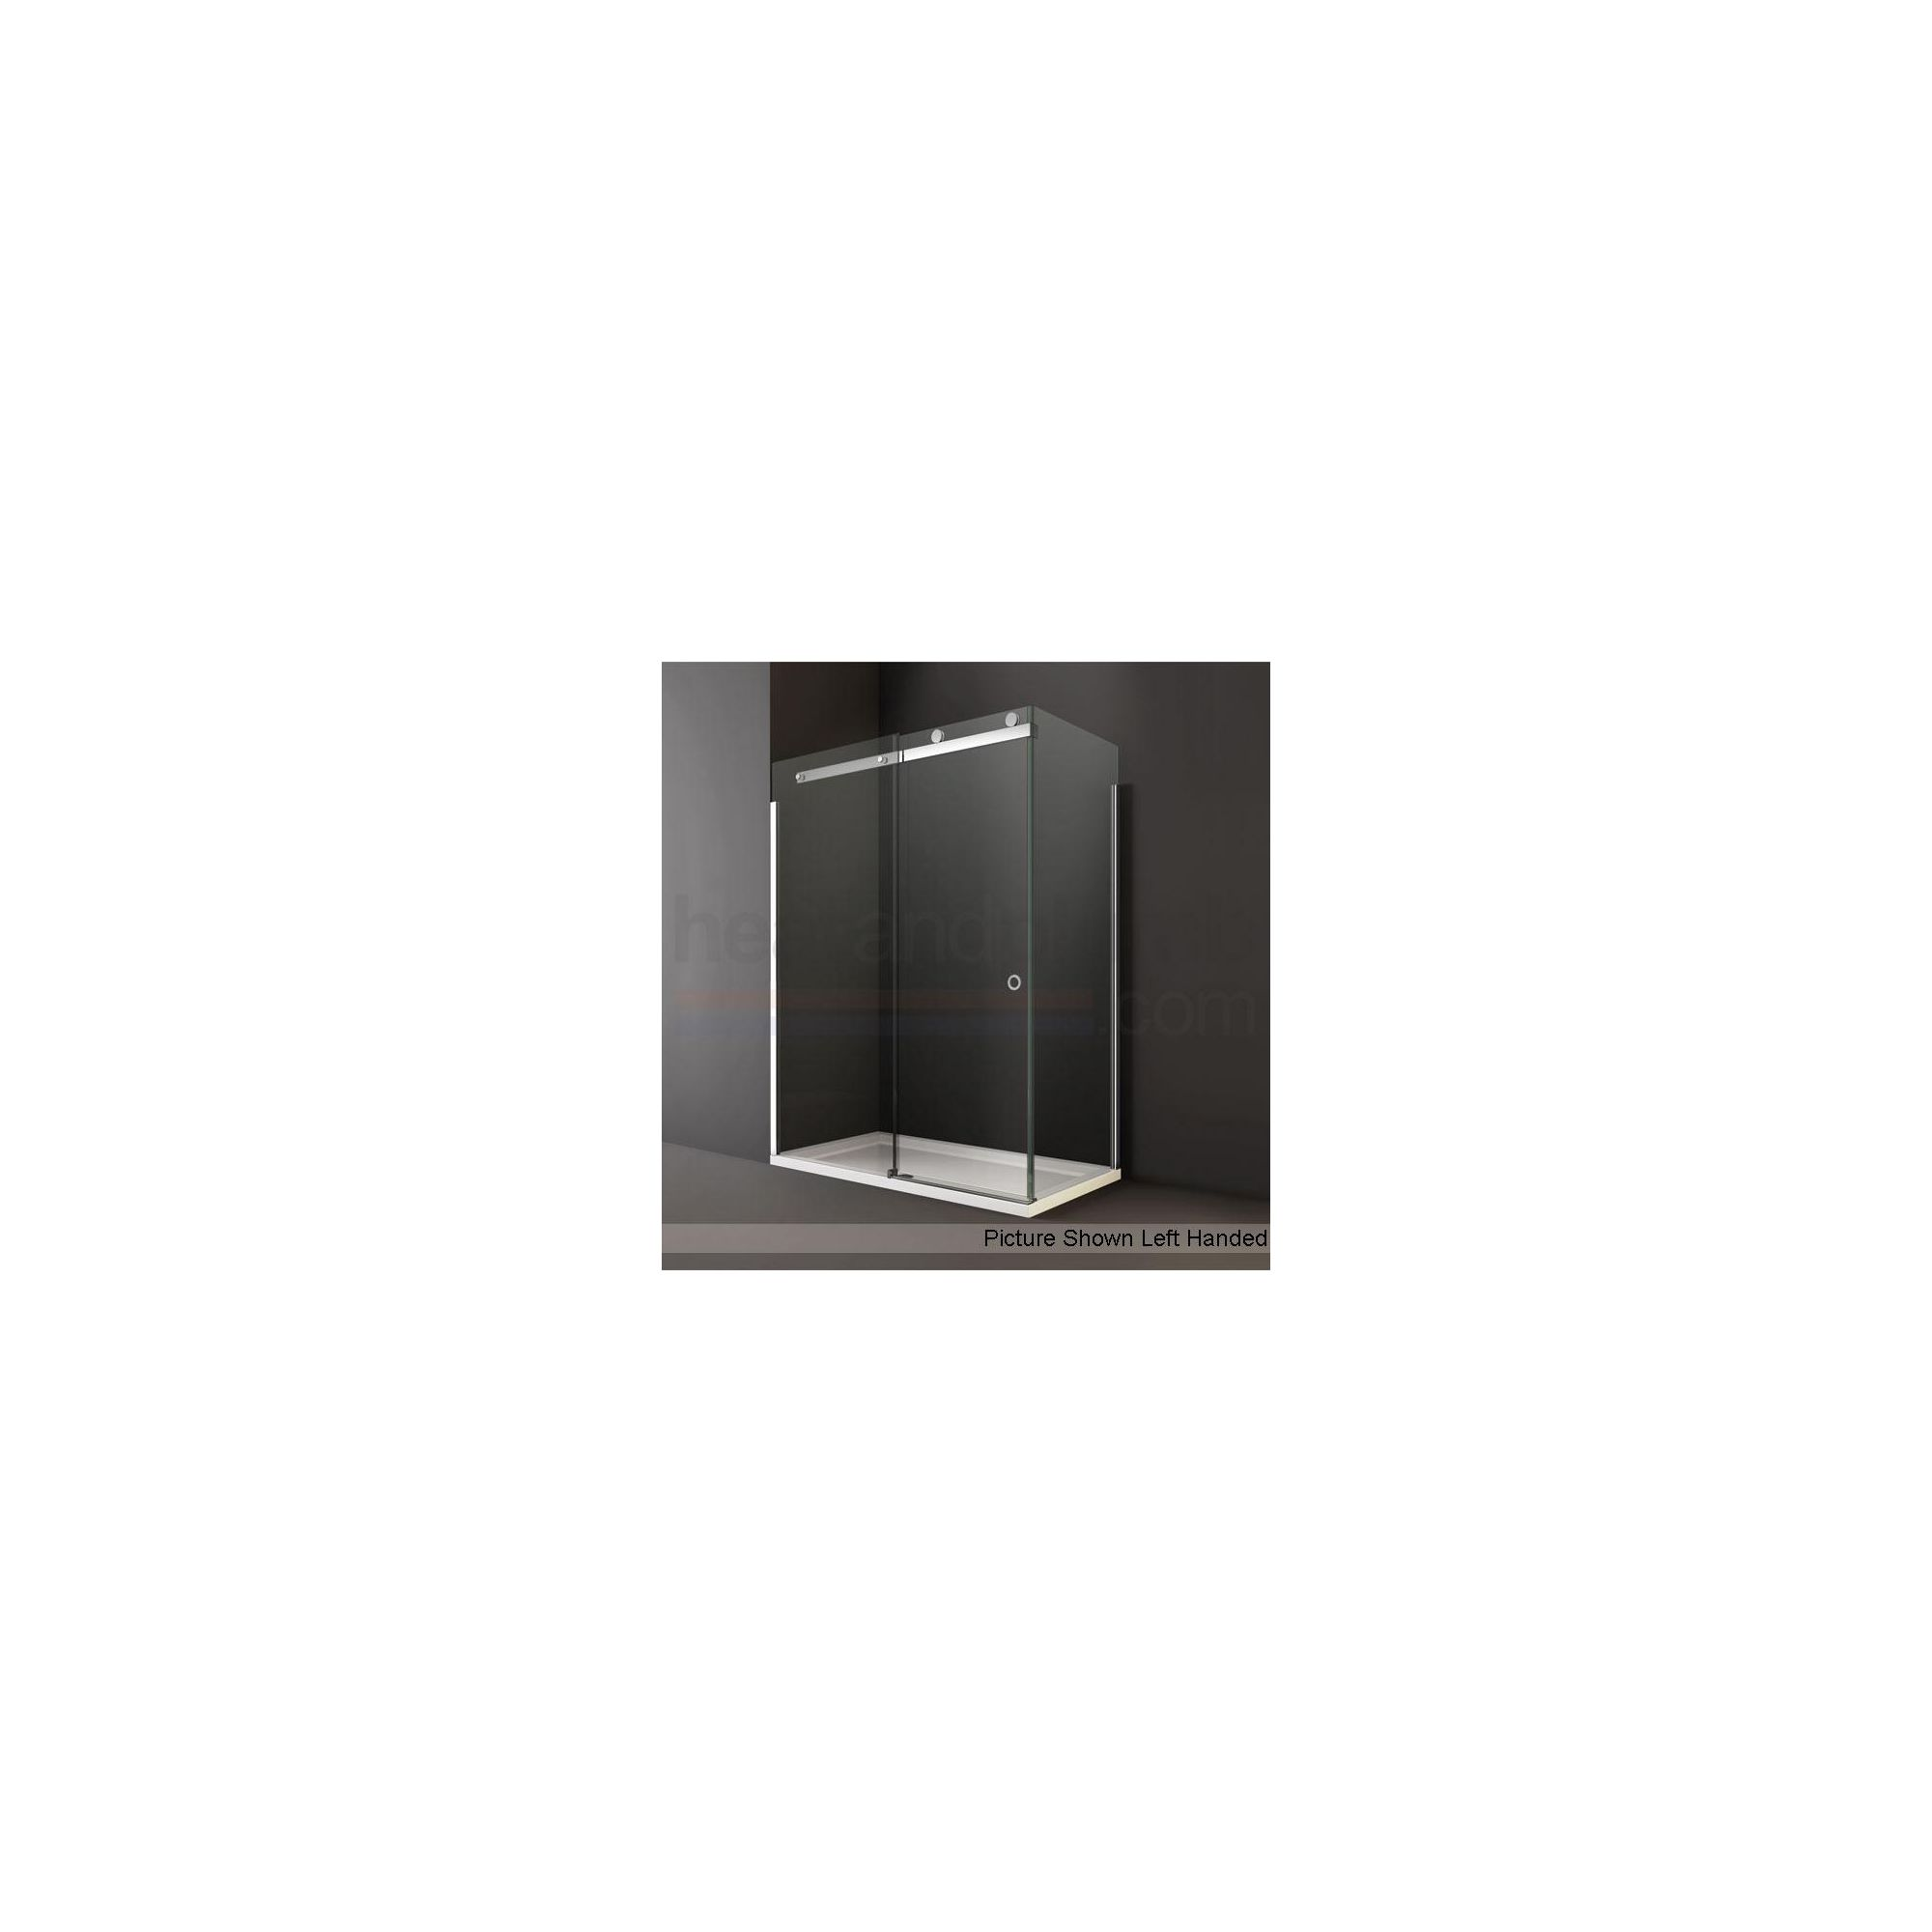 Merlyn Series 10 Sliding Door Shower Enclosure, 1000mm x 800mm, Low Profile Tray, 10mm Glass at Tesco Direct